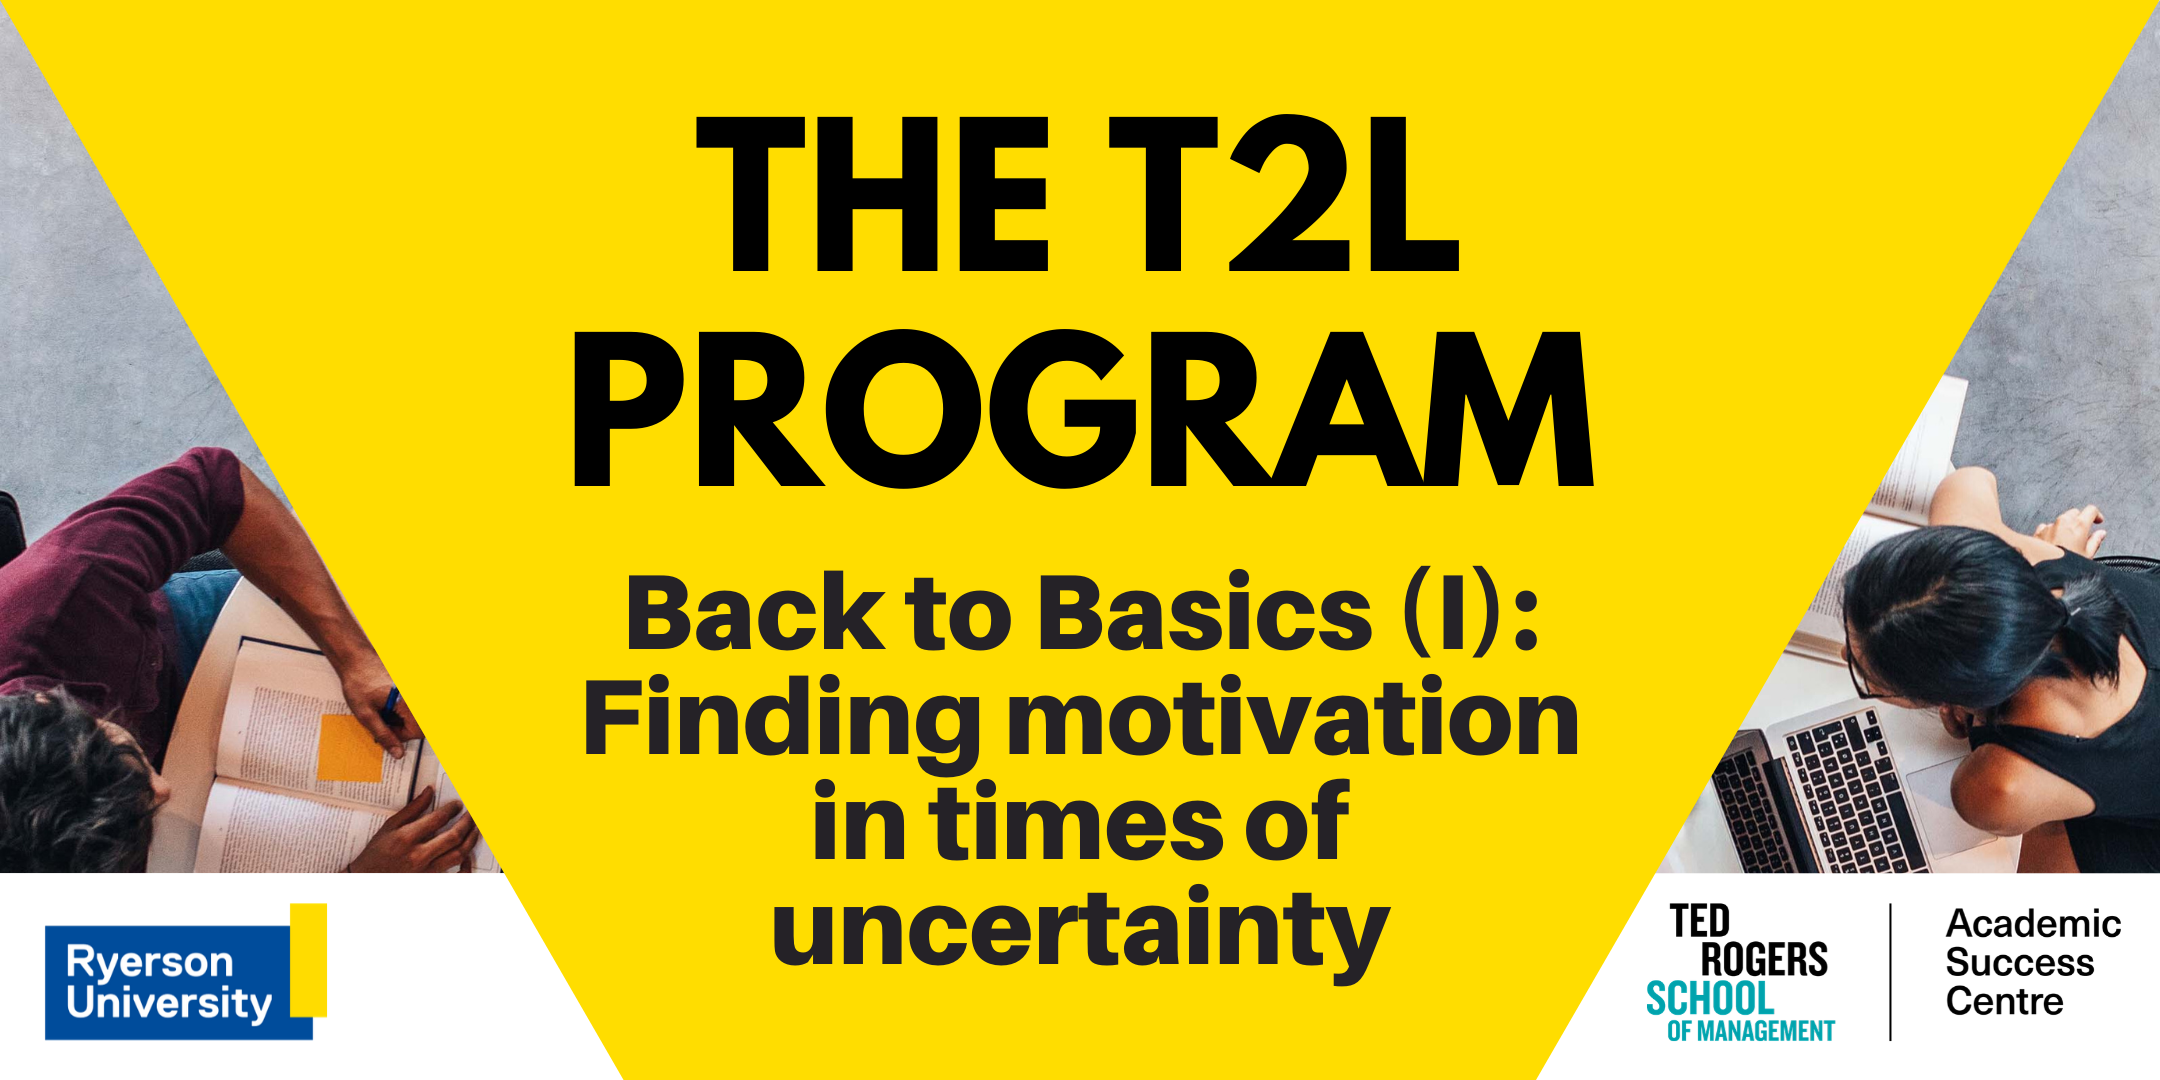 Back to Basics (I): Finding motivation in times of uncertainty